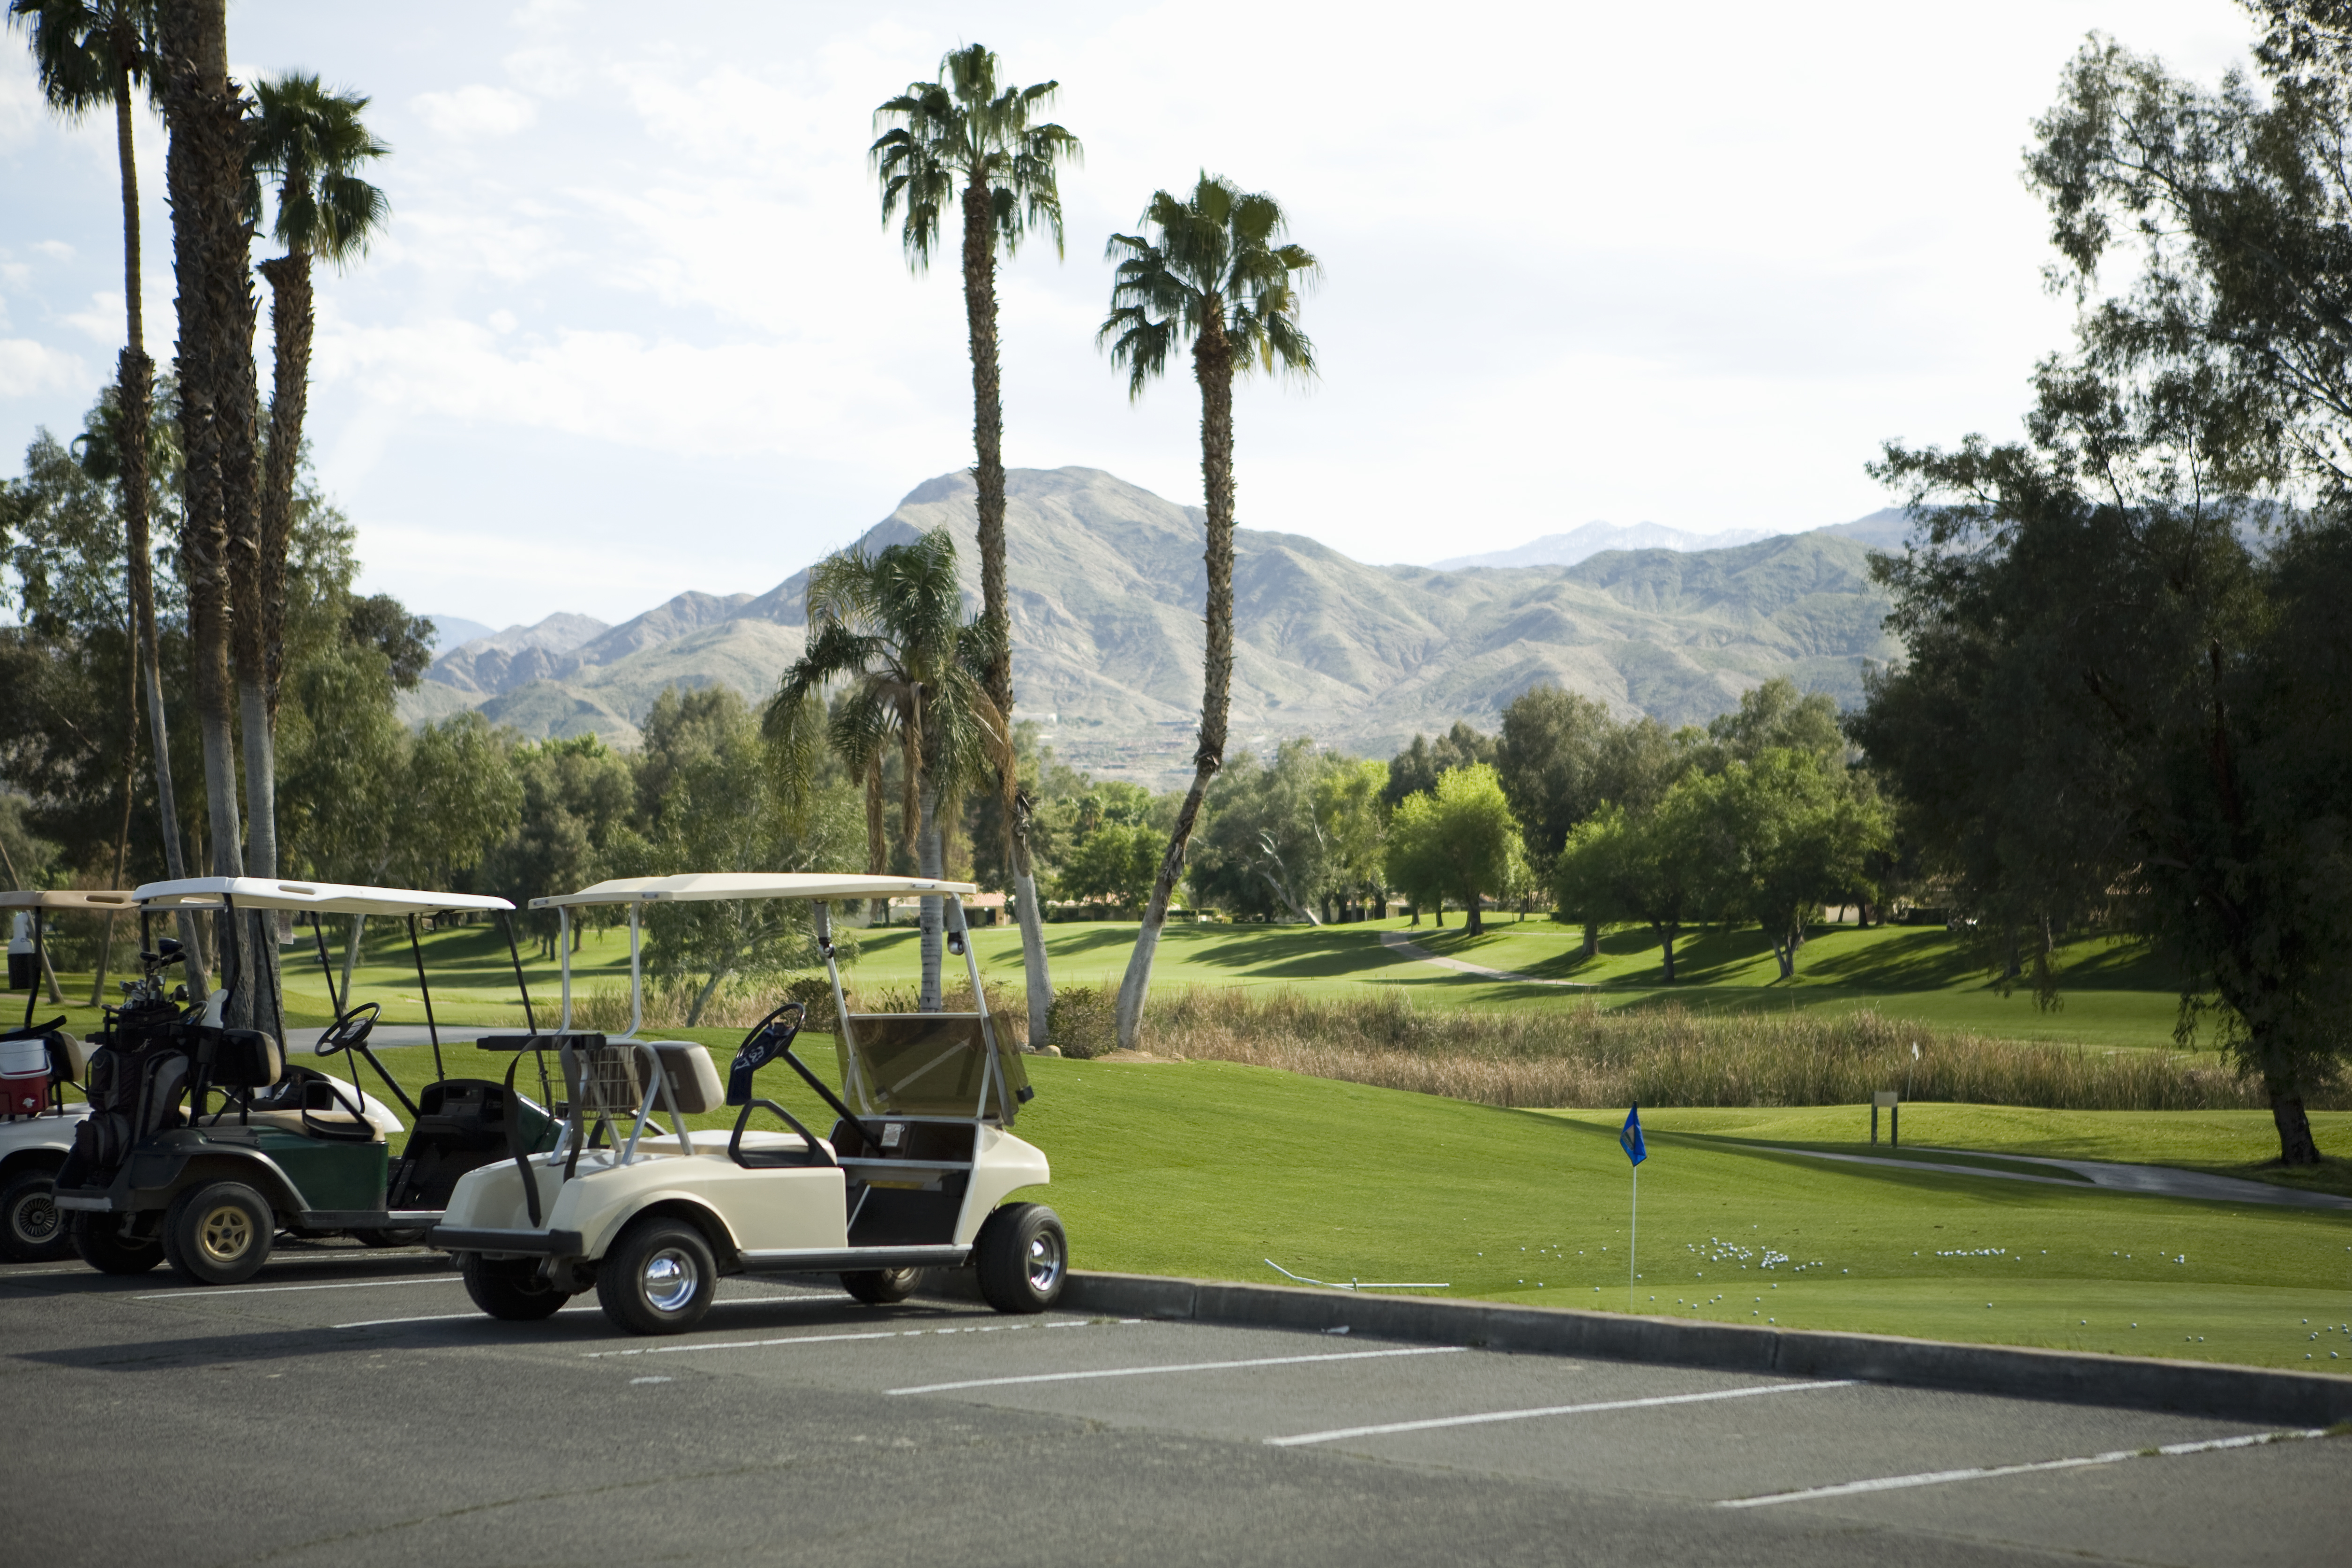 Golf carts parked at a golf club, Palm Springs, California, USA